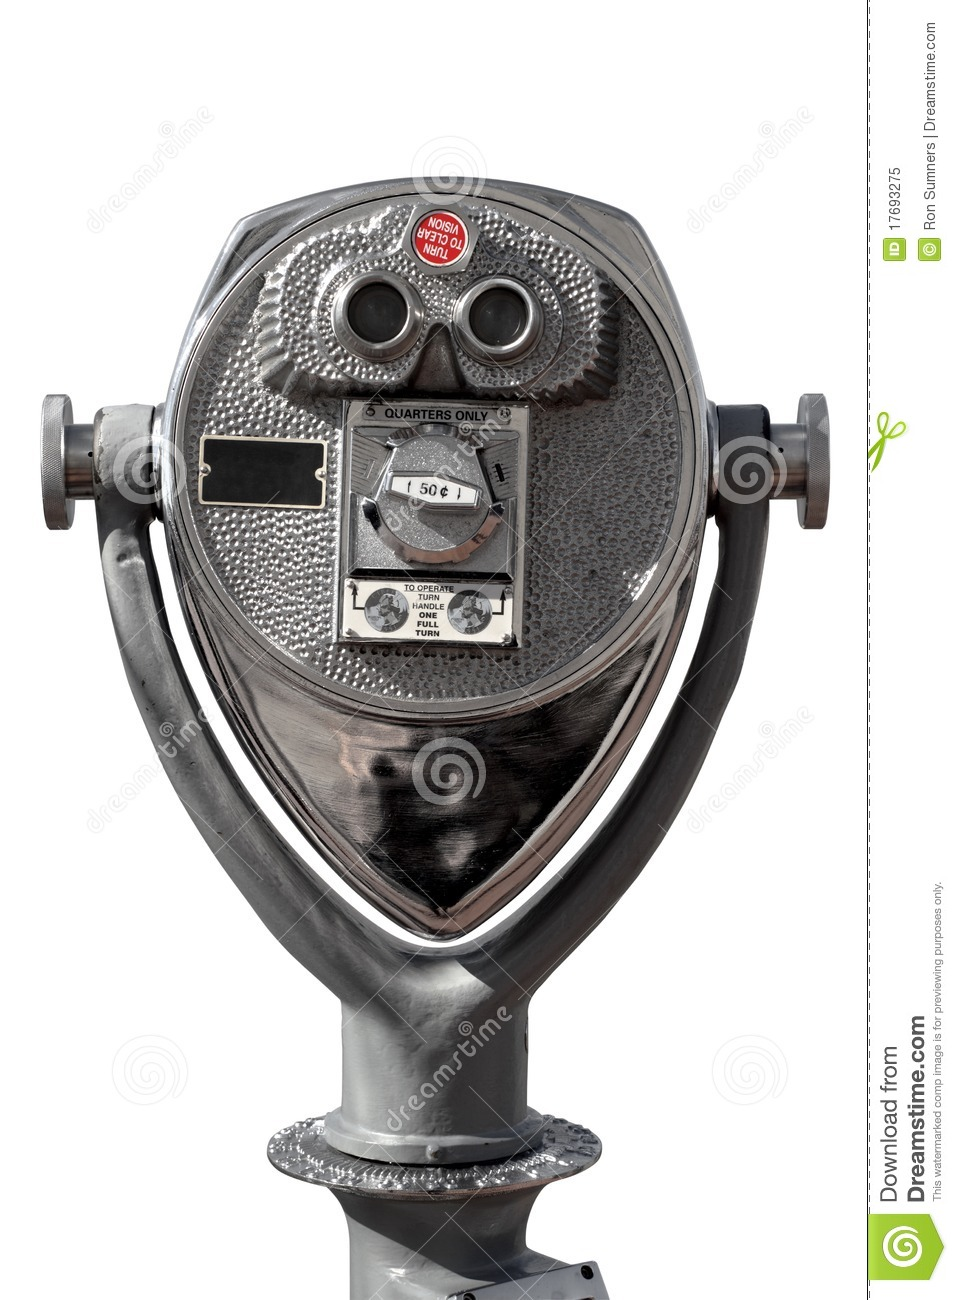 Coin Operated Binoculars Royalty Free Stock Photo Image